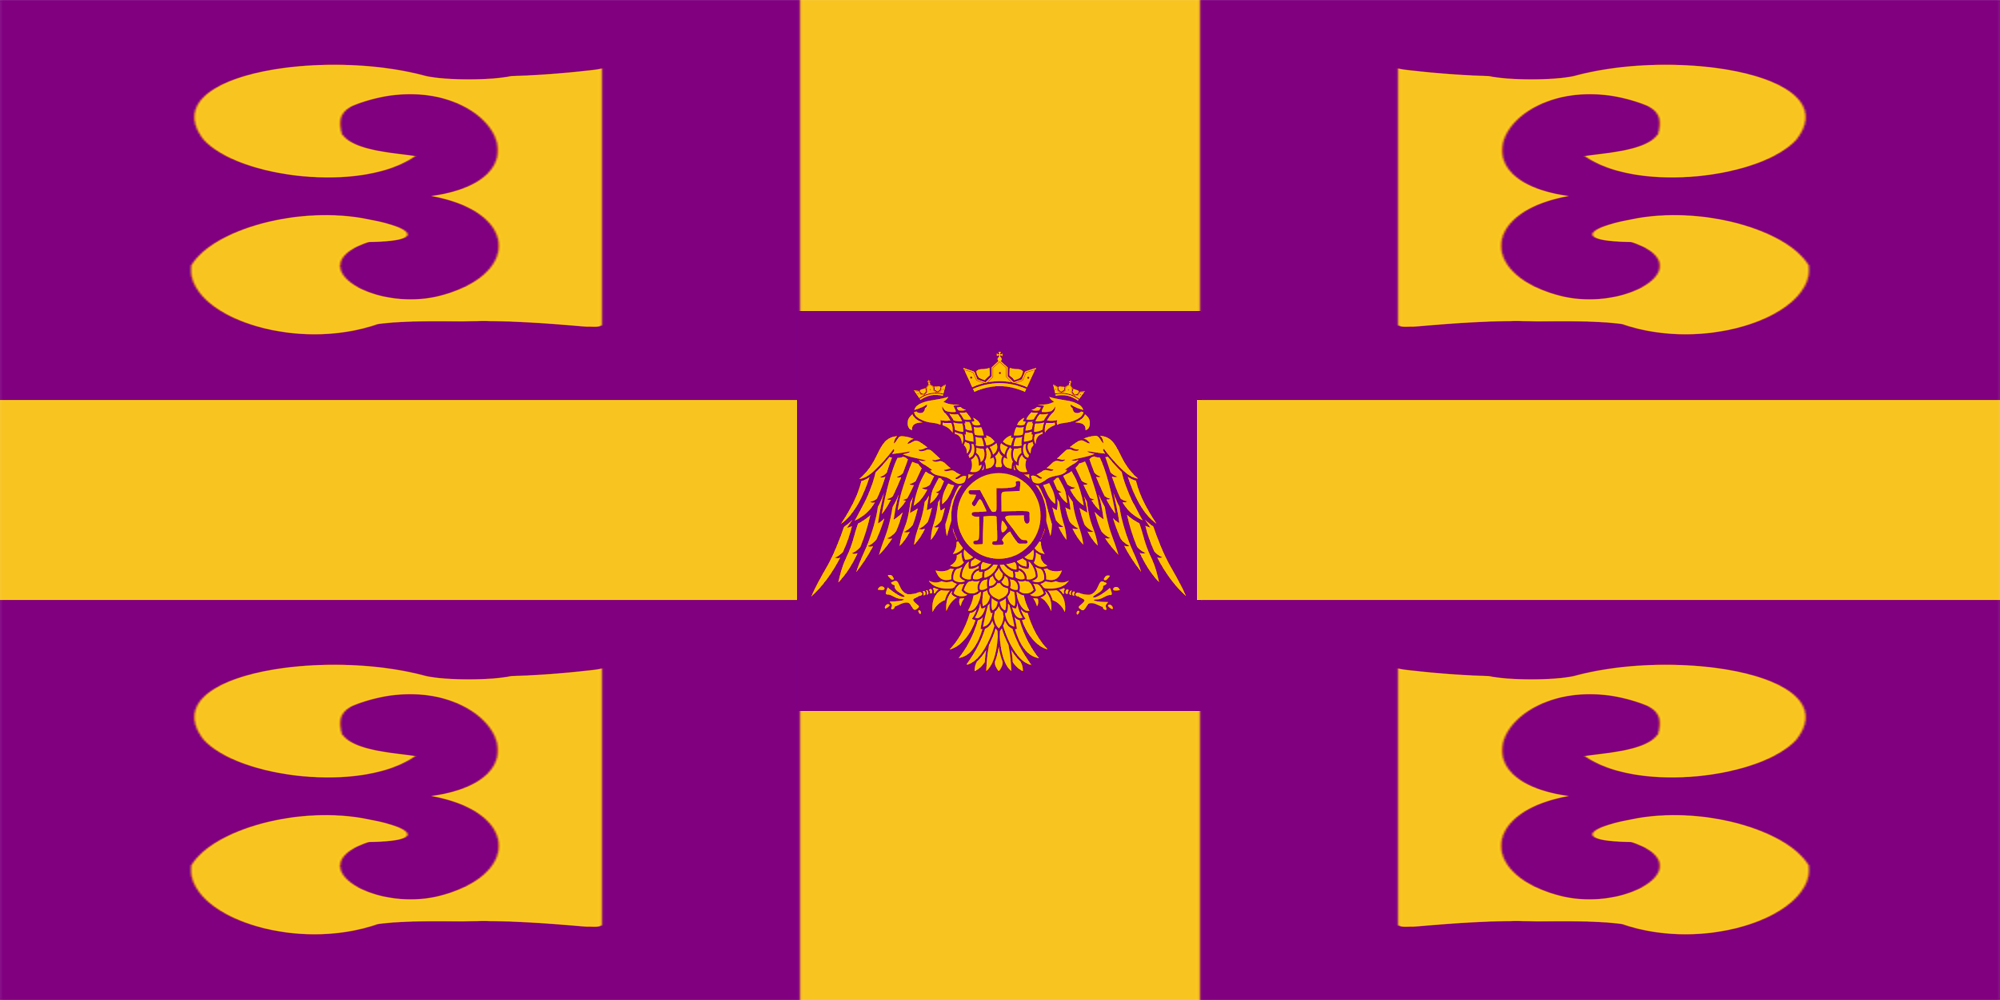 New_Flag_of_the_Byzantine_Empire_Galaguerra1_first_version.png